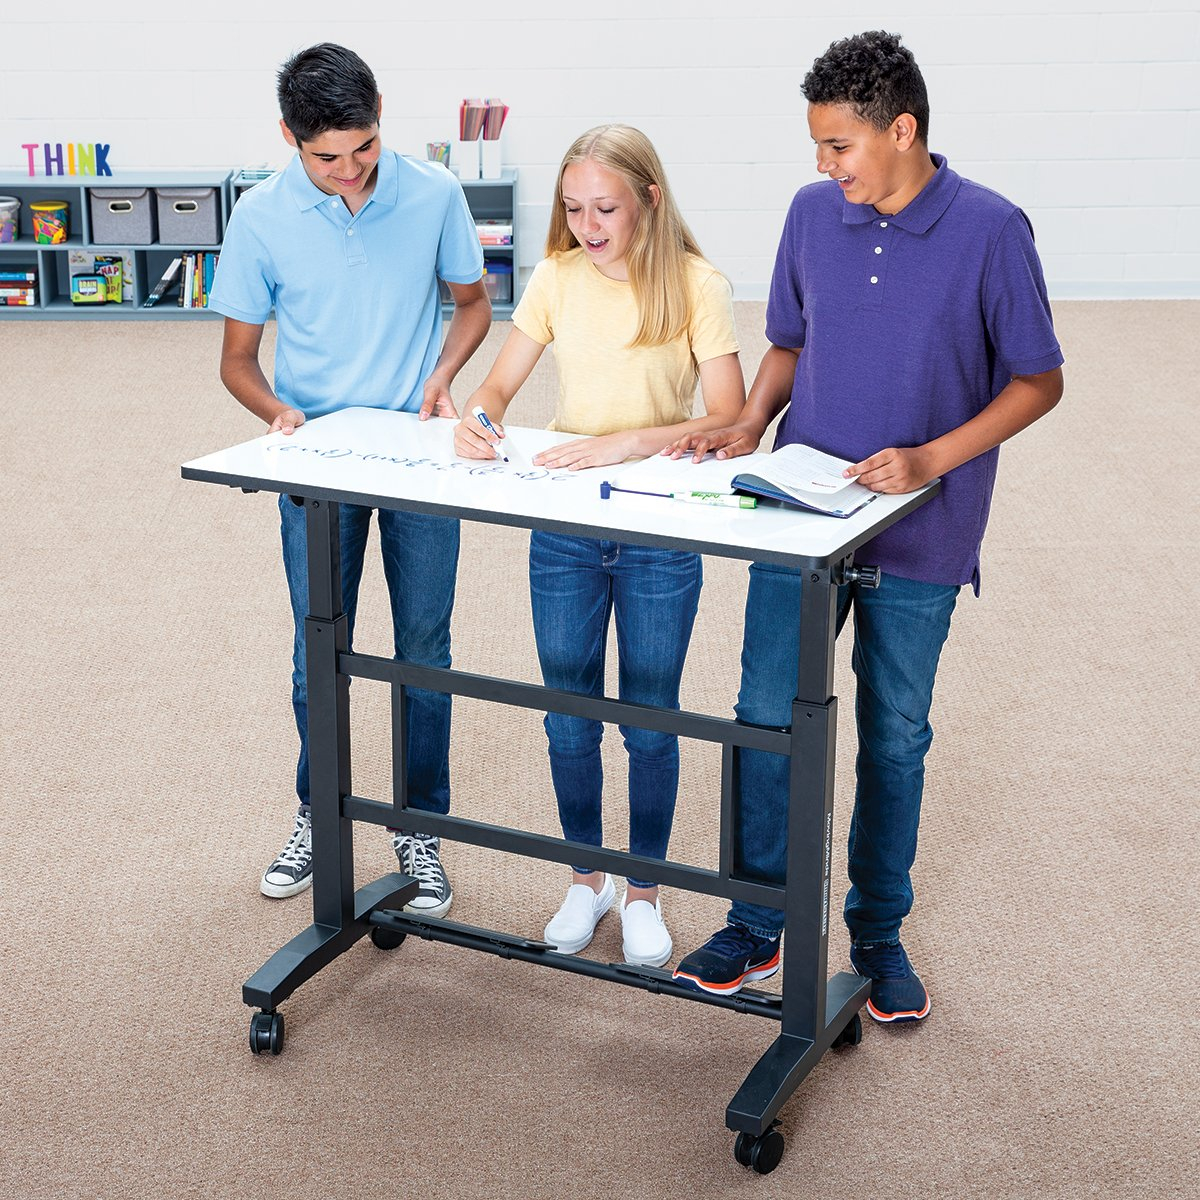 flexible seating options